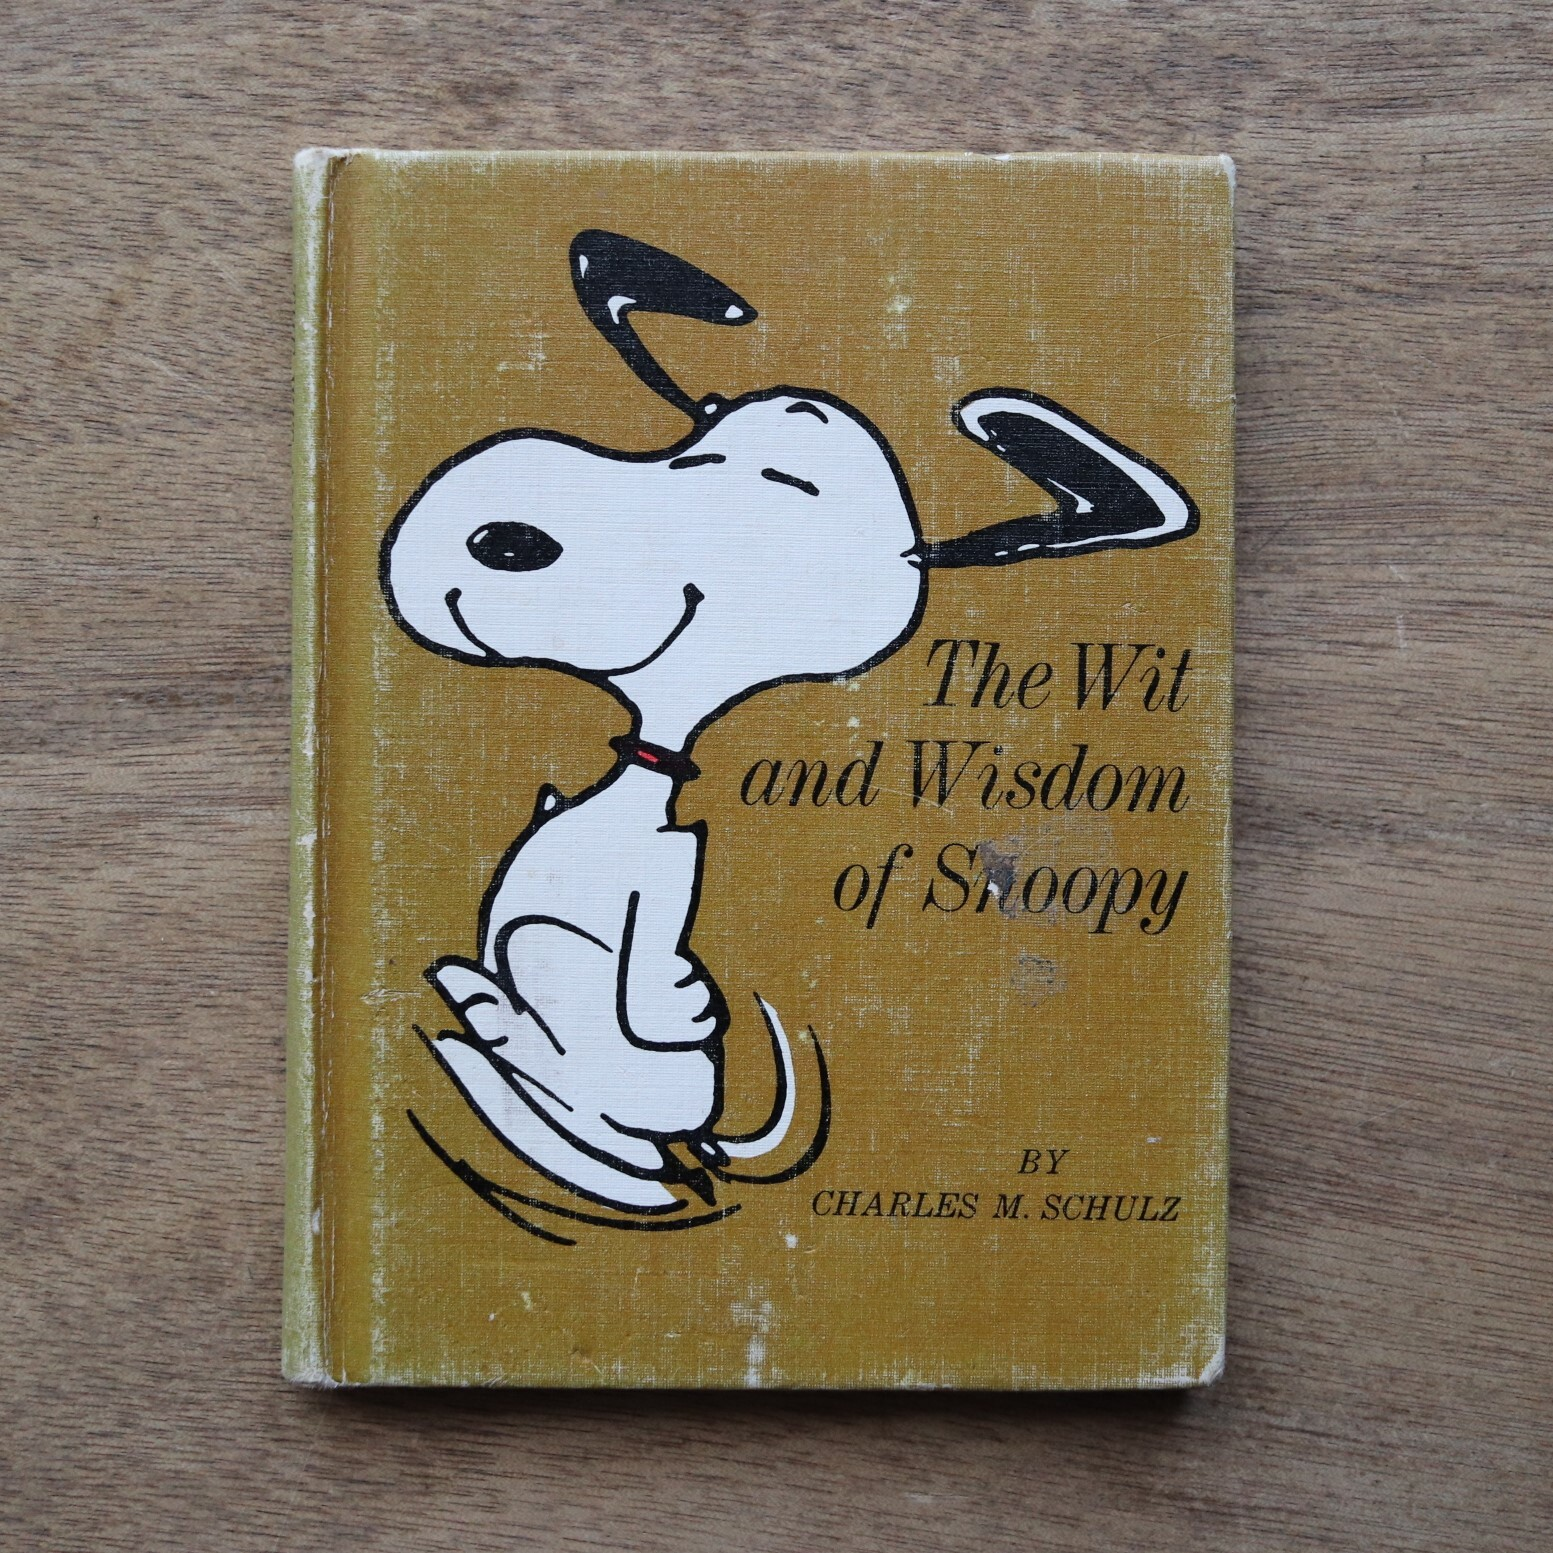 The Wit and Wisdom of Snoopy